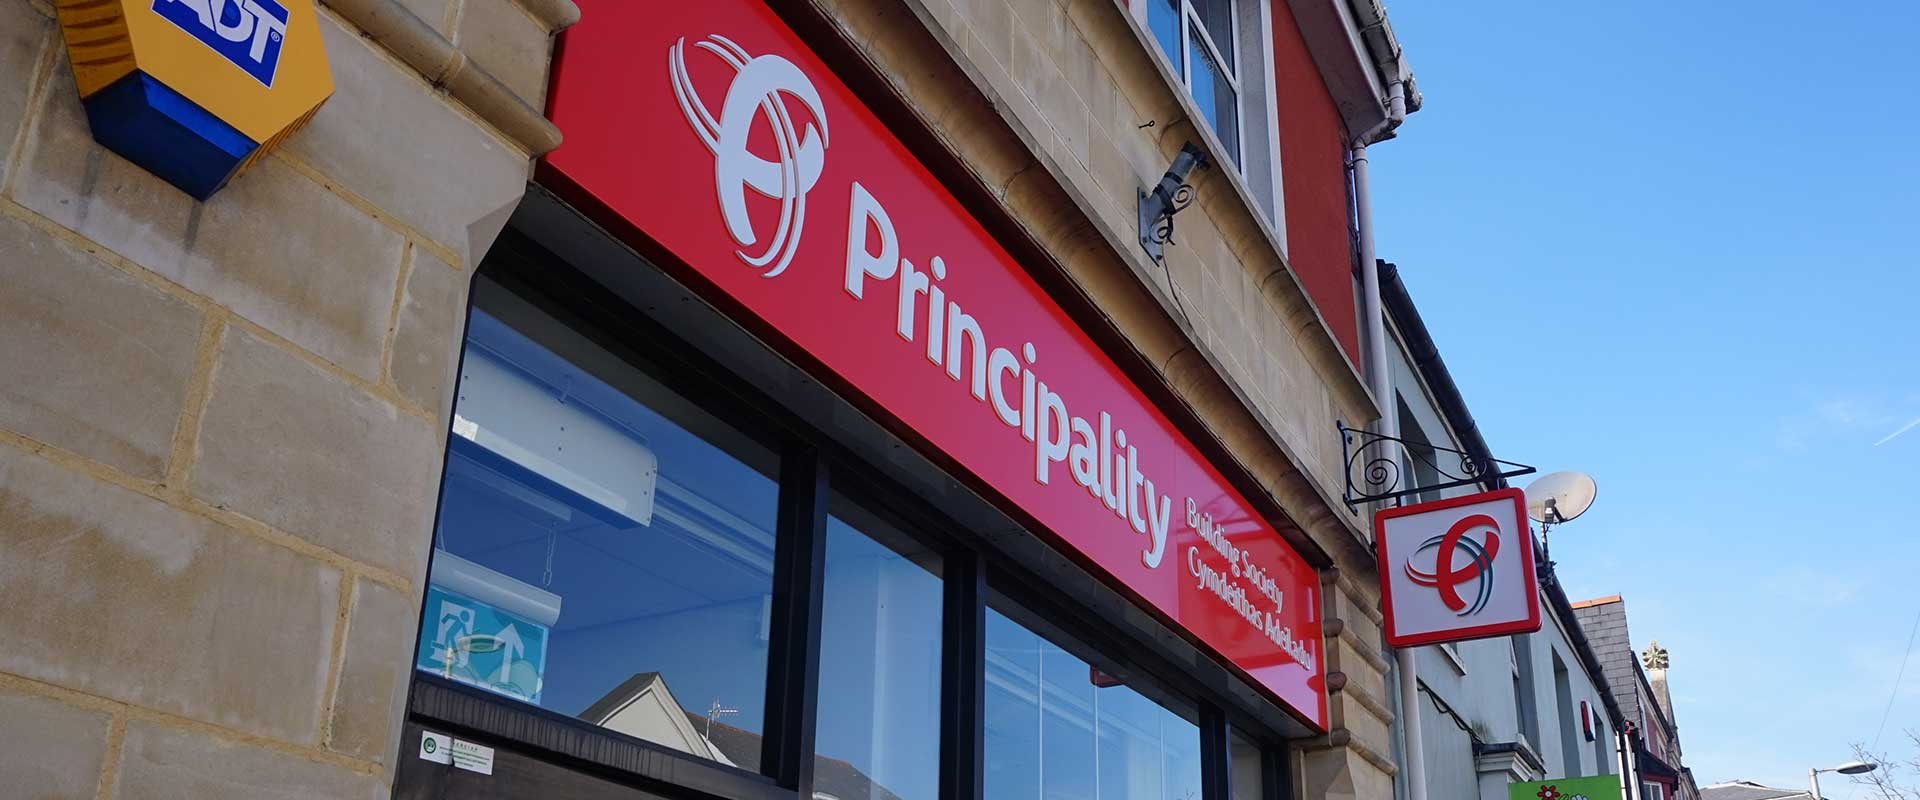 Principality Building Society external signage